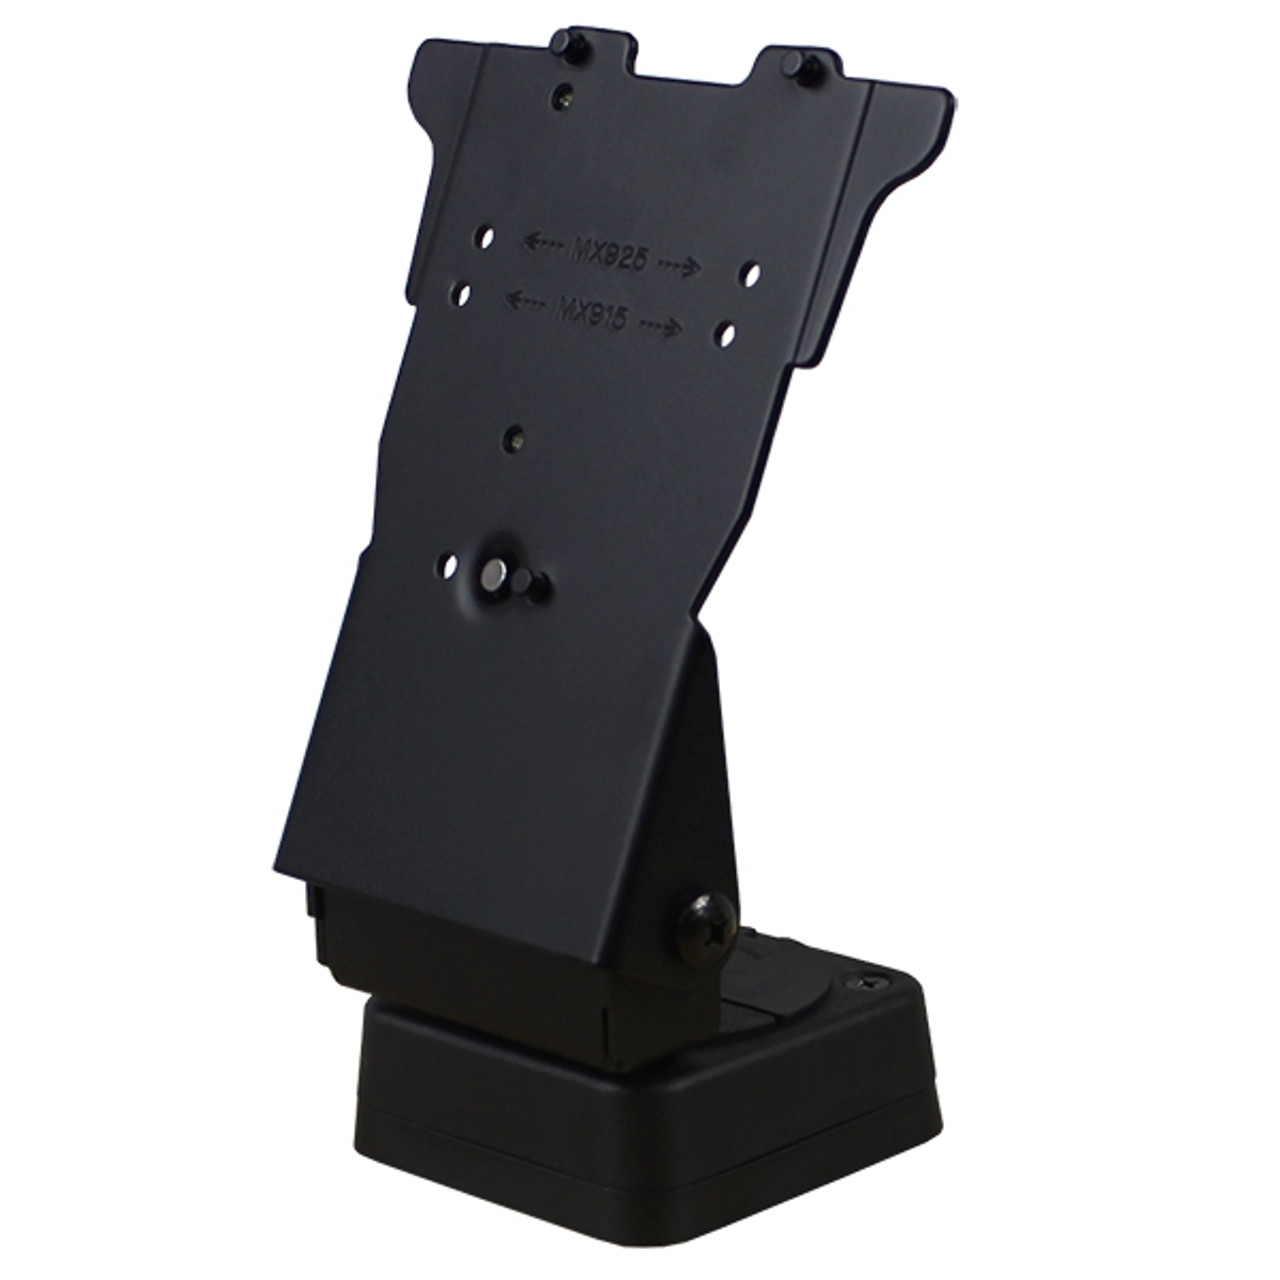 VeriFone MX925 Credit Card Stand Square Base by Swivel Stands